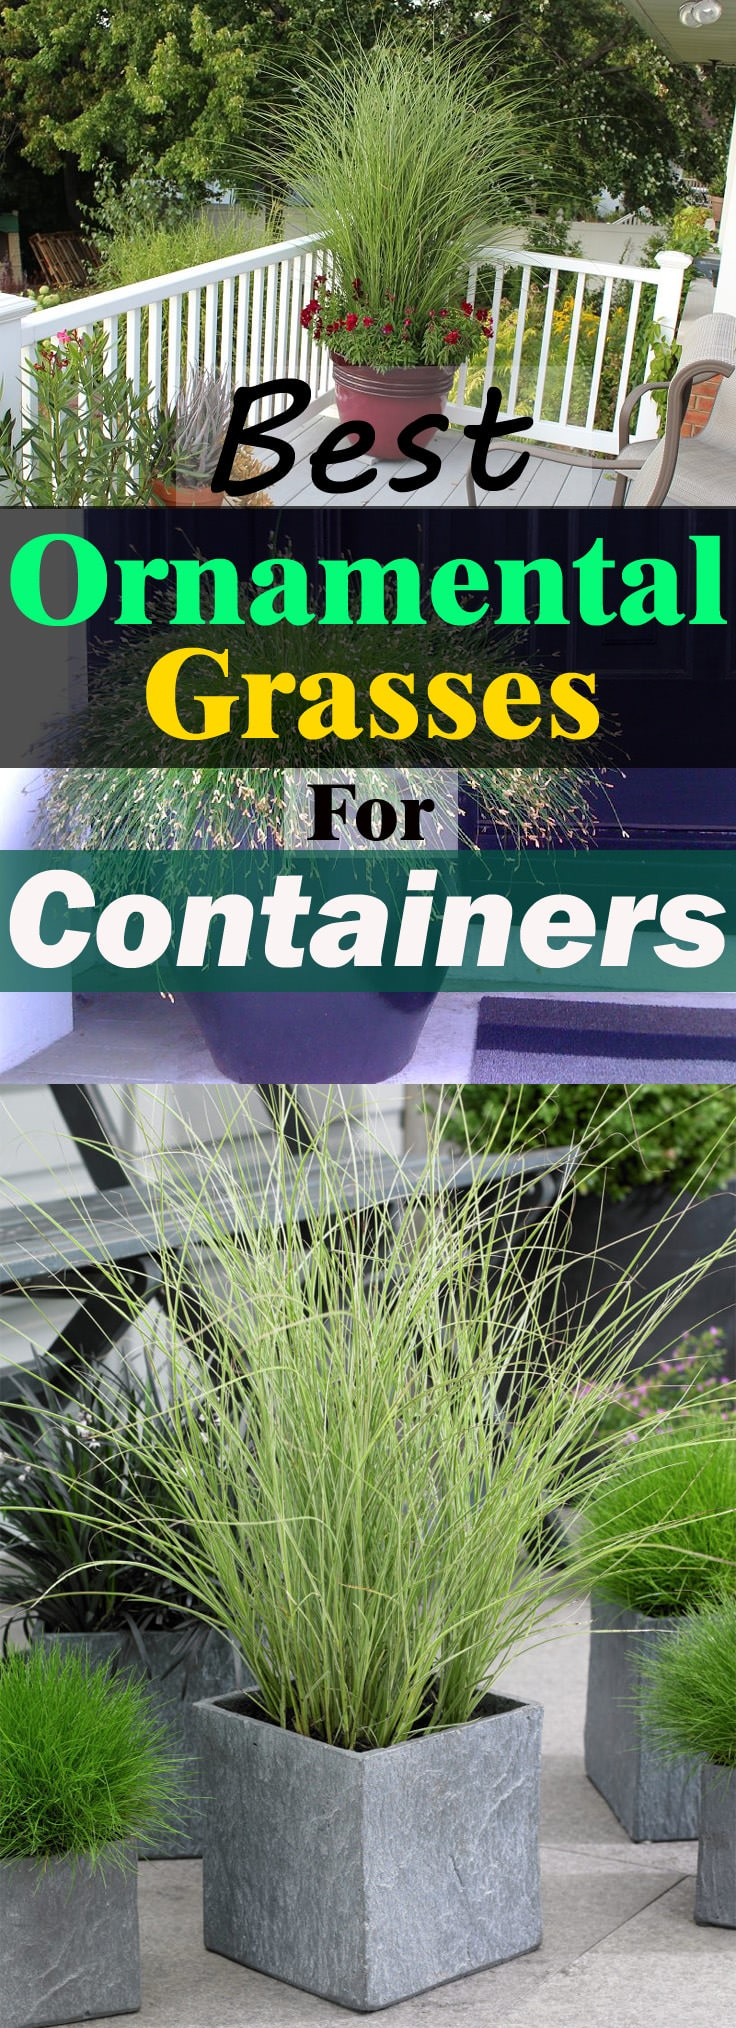 Low Growing Ornamental Grass Best ornamental grasses for containers growing ornamental grass growing ornamental grasses is fun you can decorate your house garden balcony or workwithnaturefo